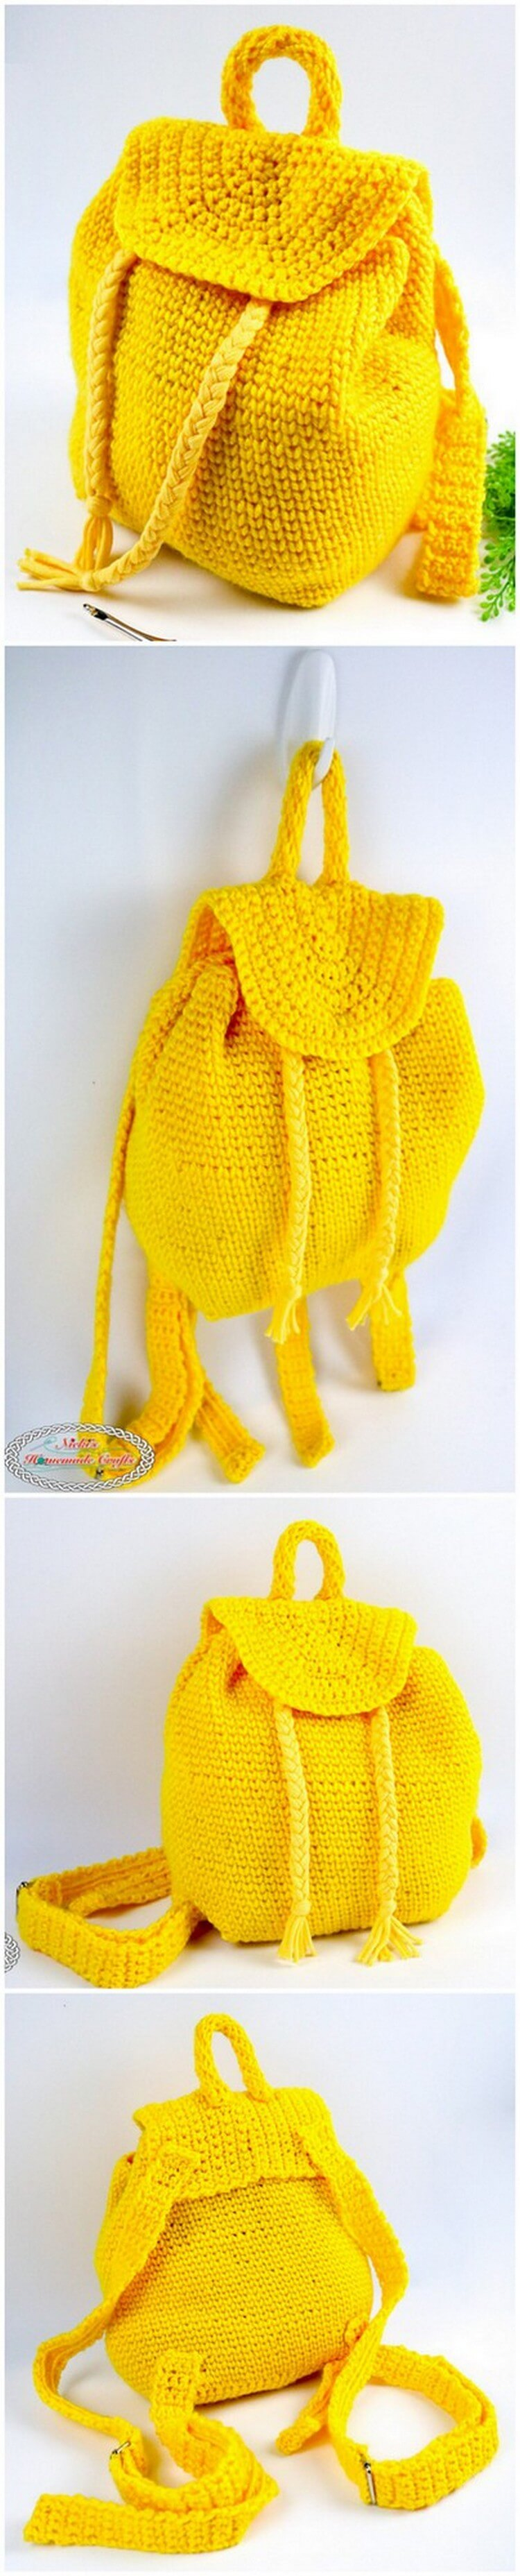 Crochet Backpack Pattern (13)